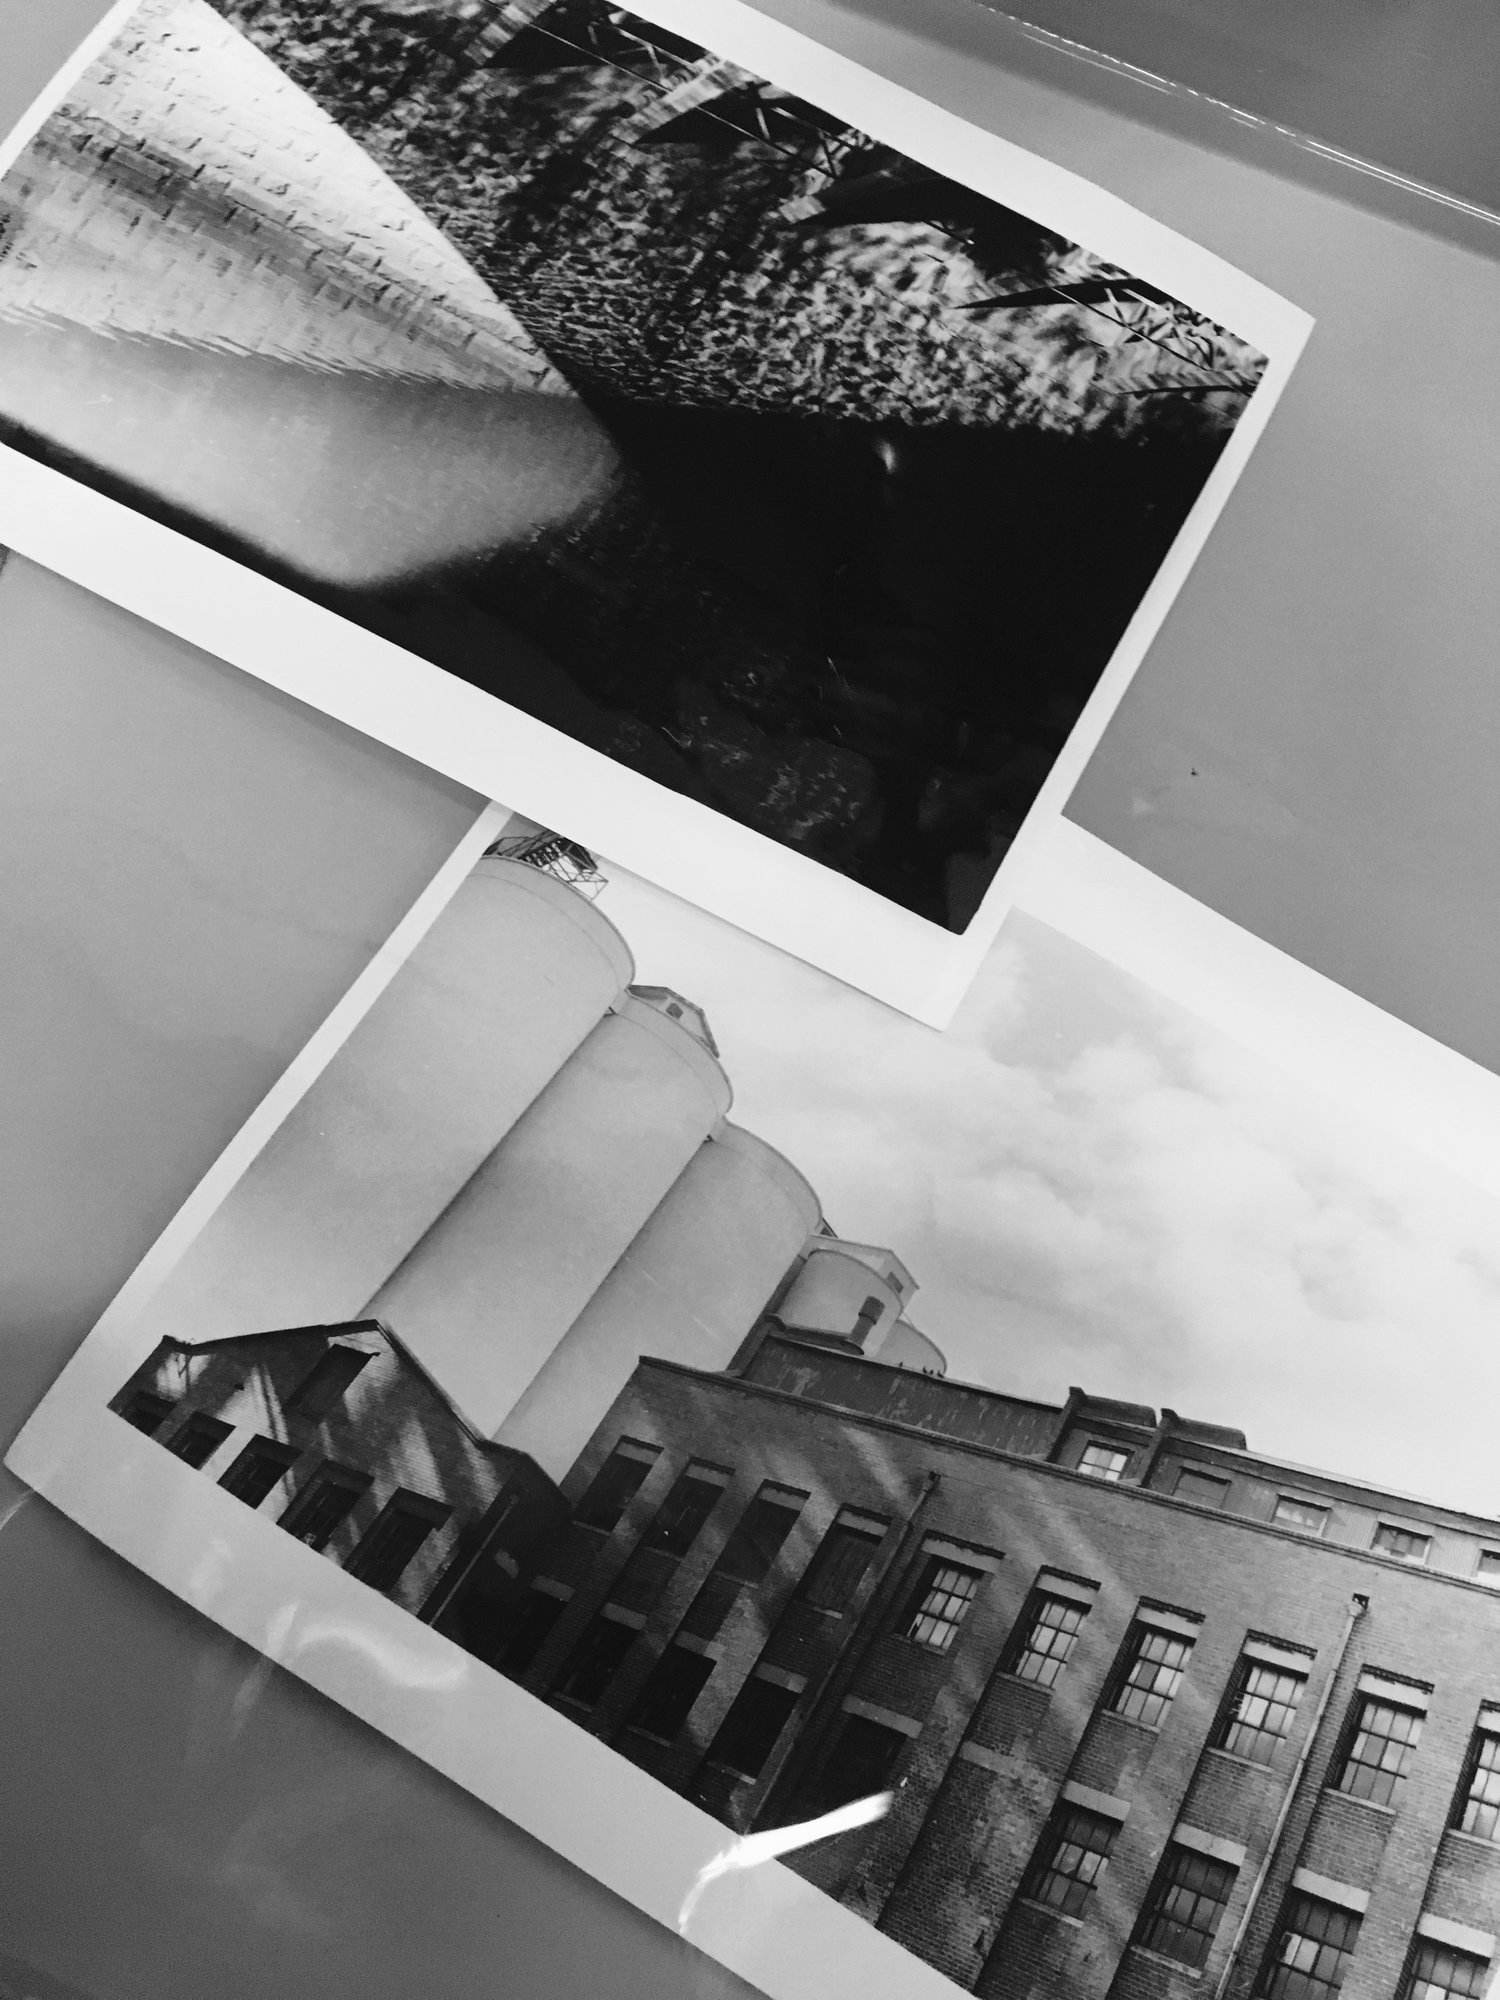 Part two how to choose the right darkroom photo paper